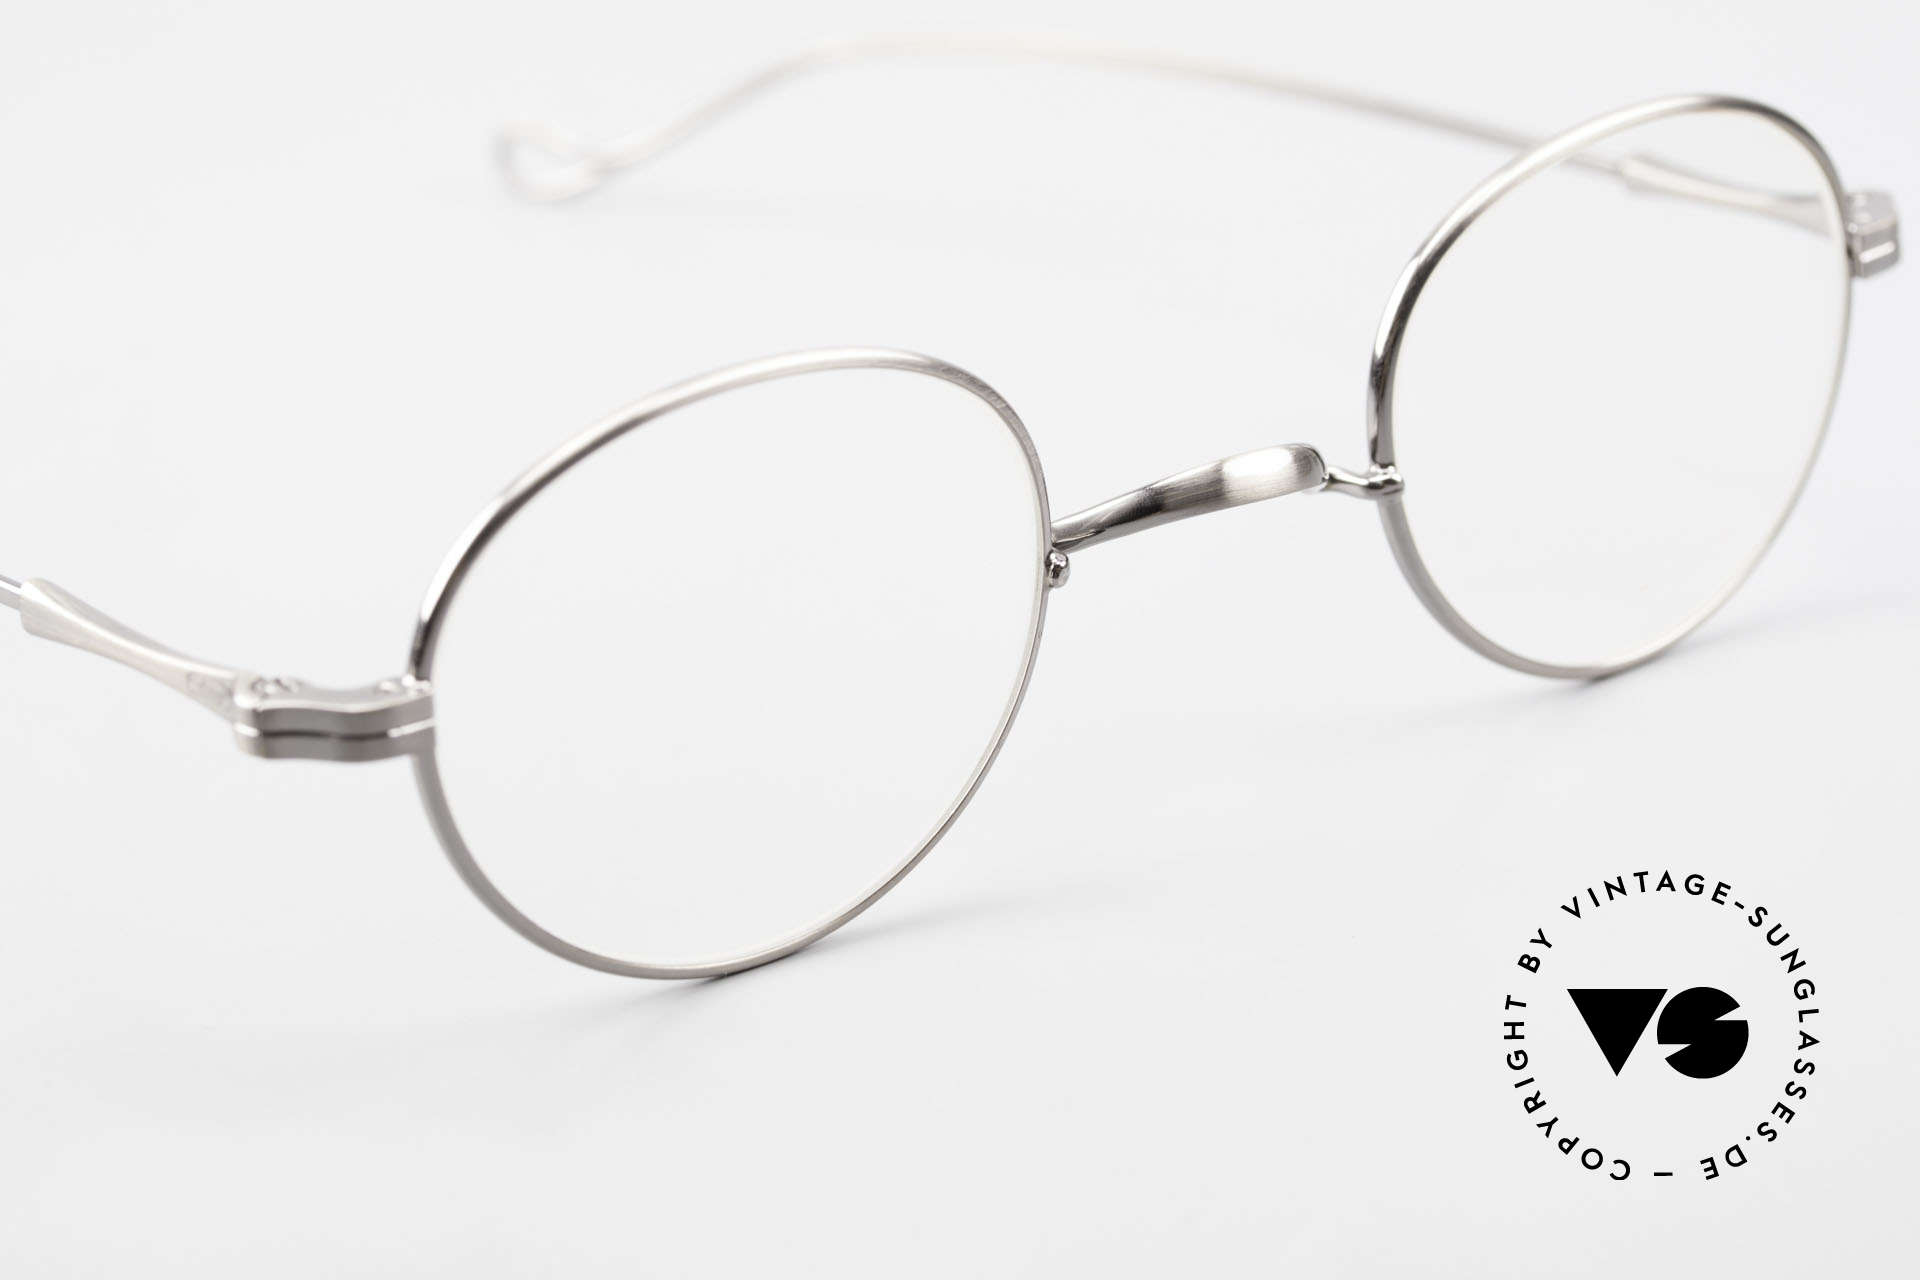 Lunor II 21 Metal Frame Anatomic Bridge, unworn RARITY (for all lovers of quality) from app. 2009, Made for Men and Women